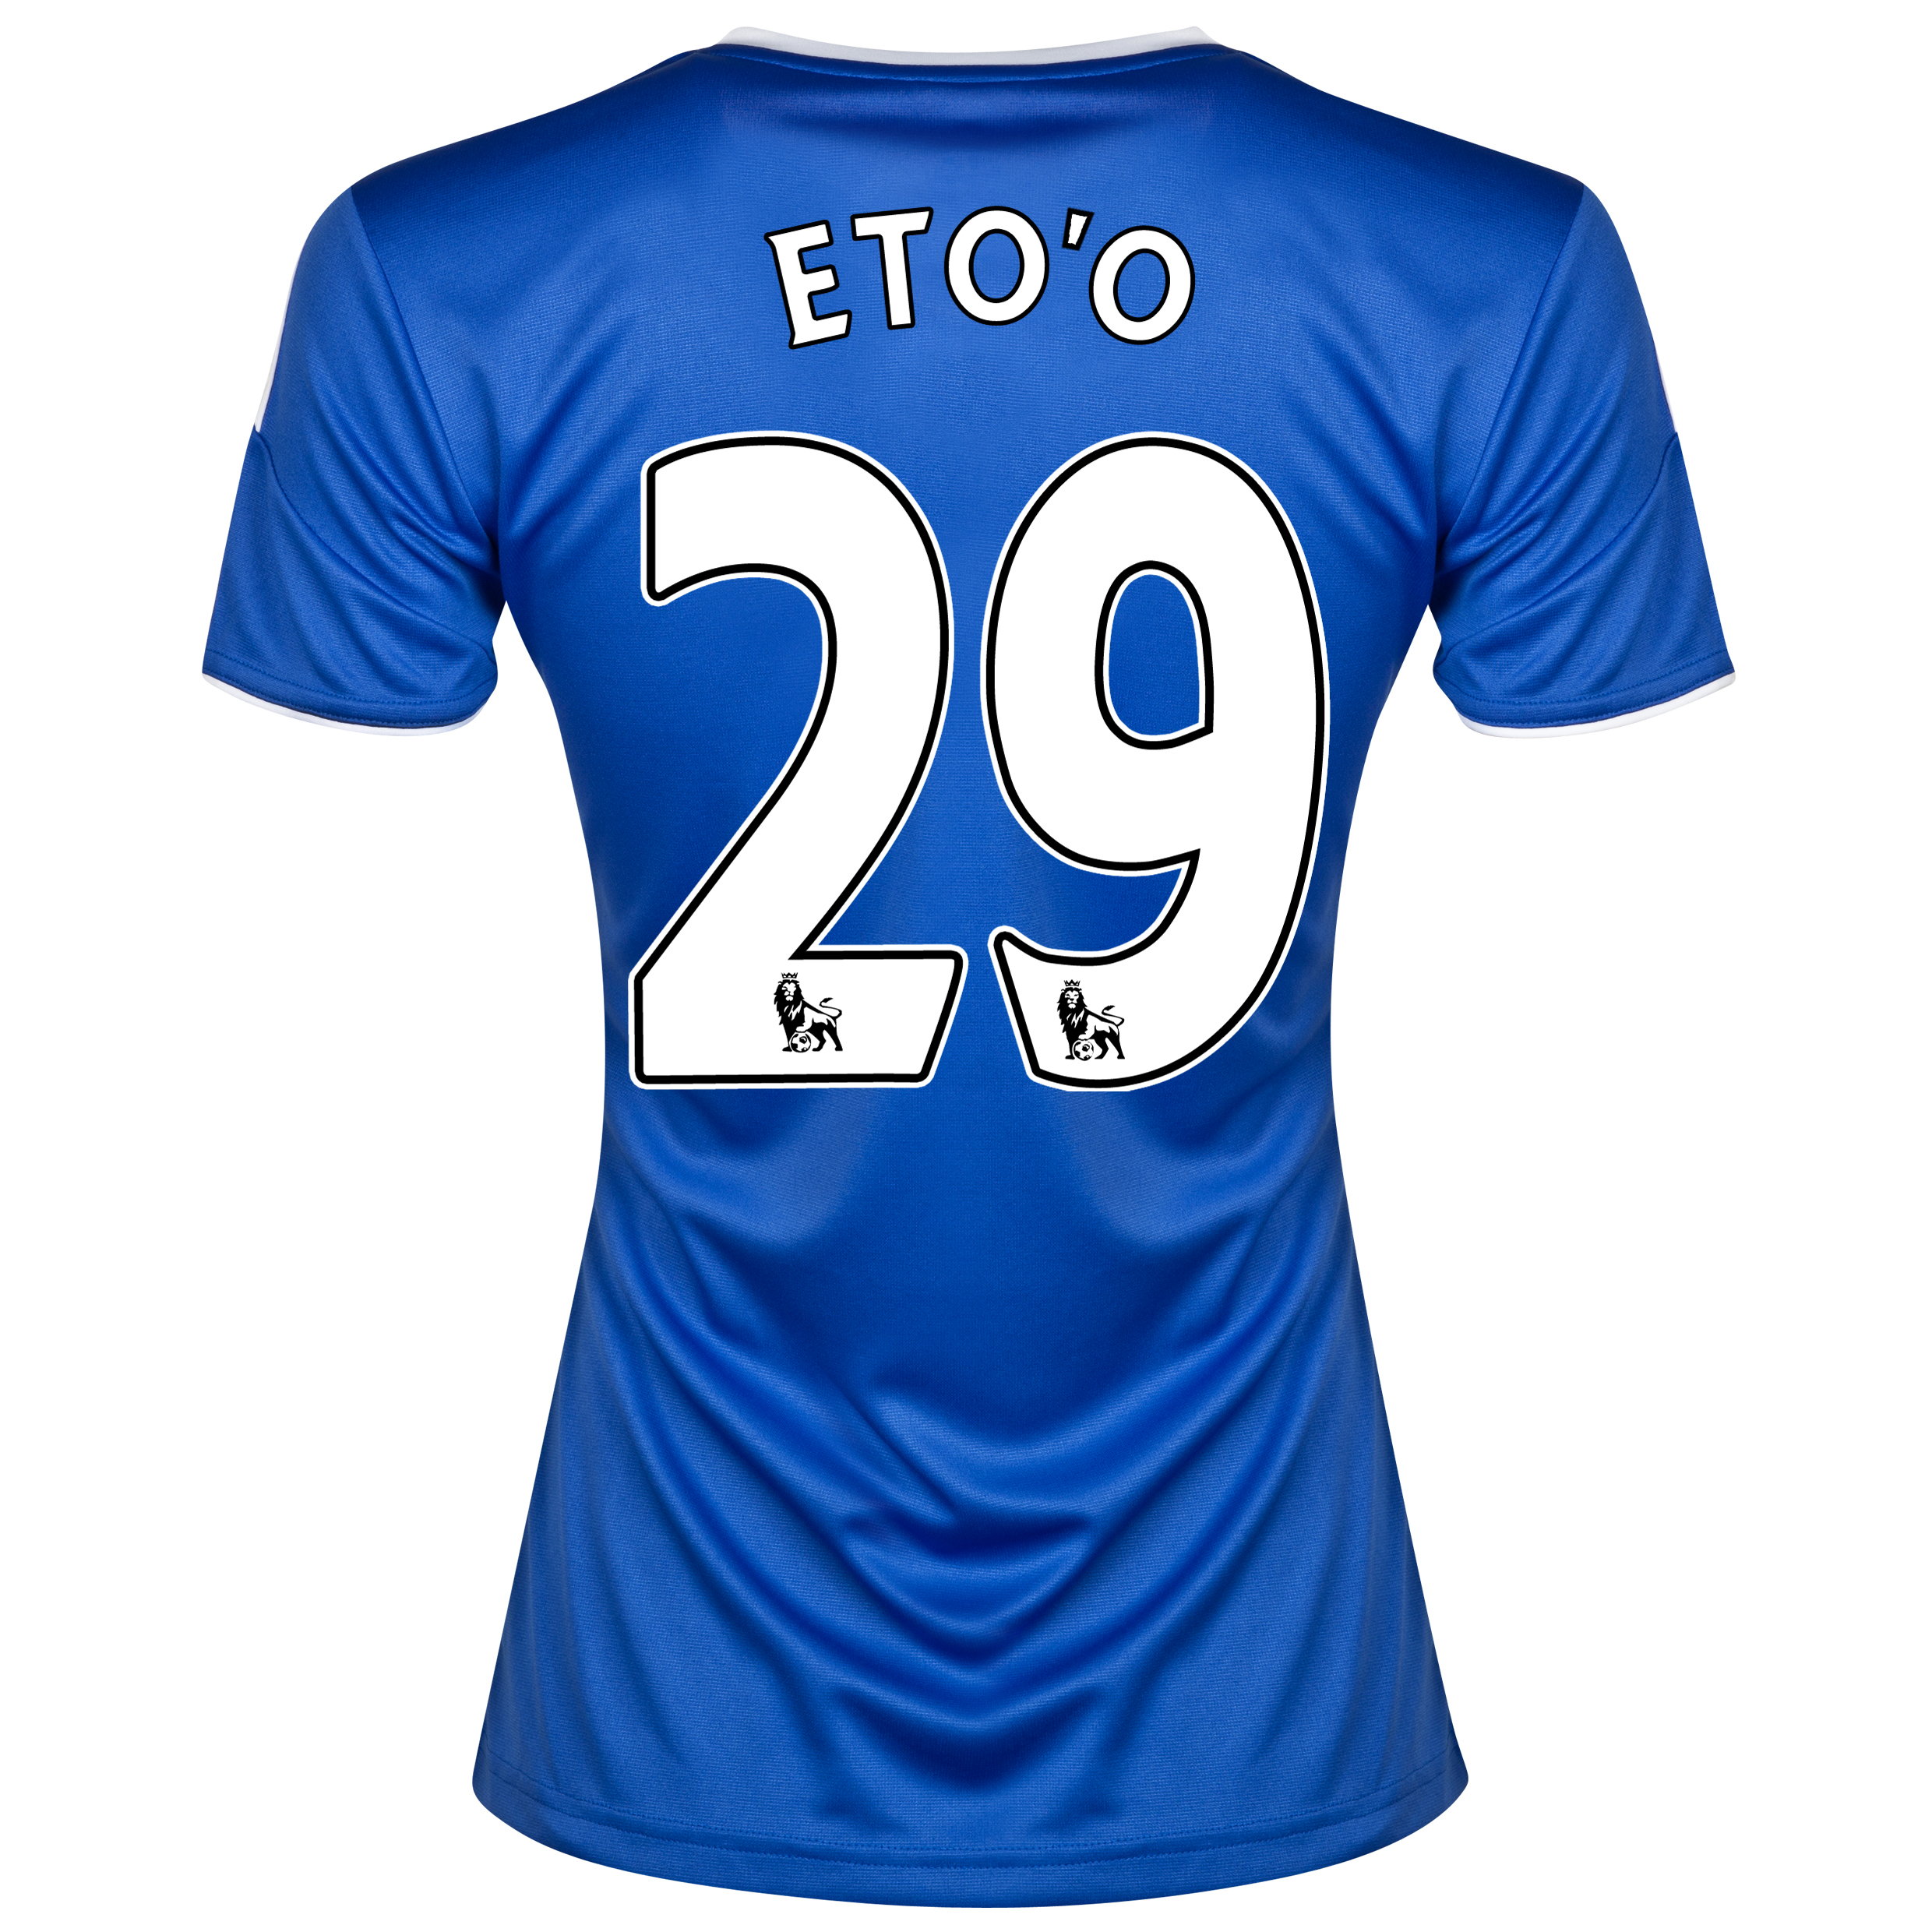 Chelsea Home Shirt 2013/14- Womens with Eto'o 29 printing